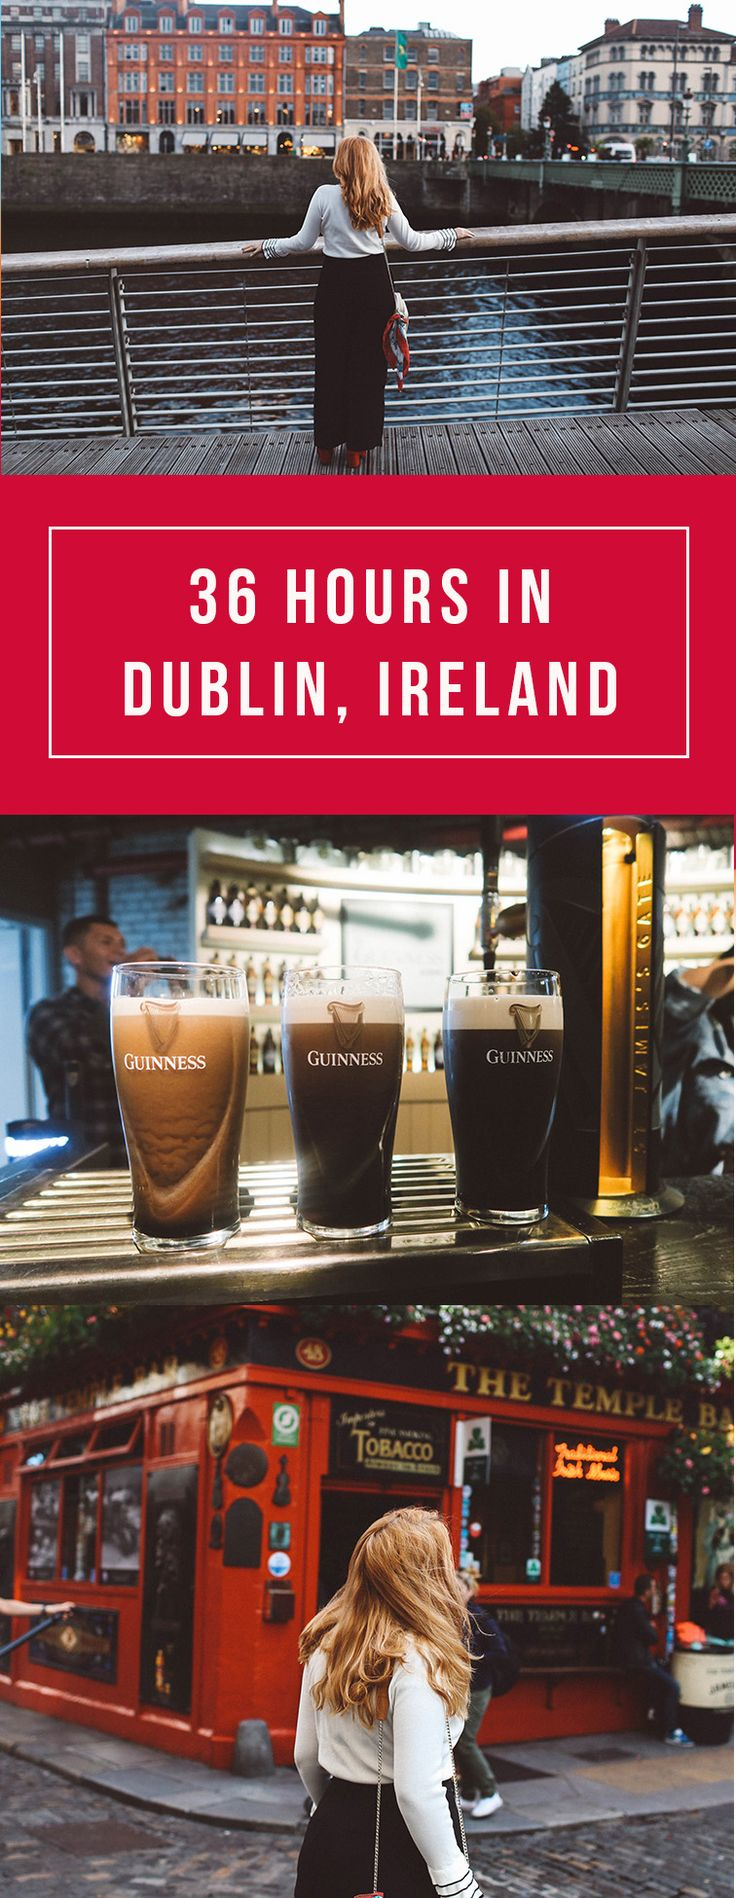 36 Hours in Dublin, Ireland Travel Guide. Everythign to see, eat, where to drink, the best pubs in Dublin travel guide for a weekend trip. Read here: http://whimsysoul.com/36-hours-dublin-travel-guide/